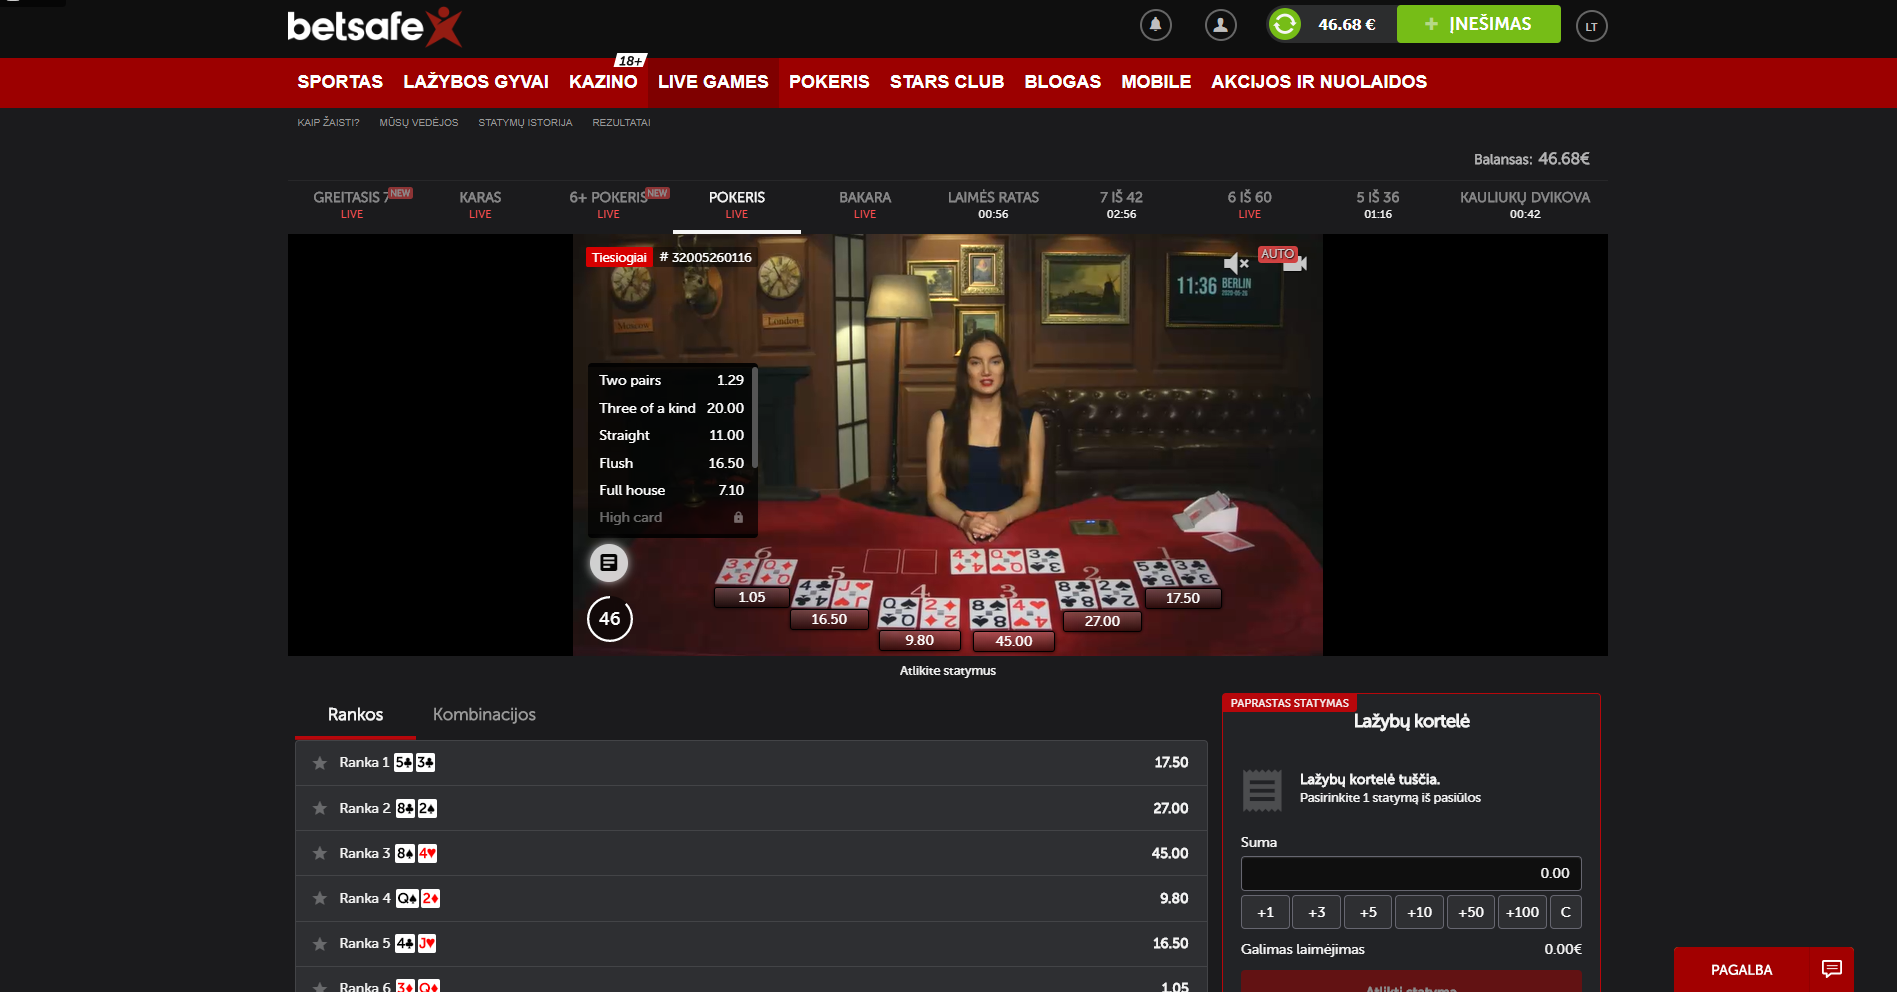 betsafe live casino live games betgames.tv - bet on poker dealer cards